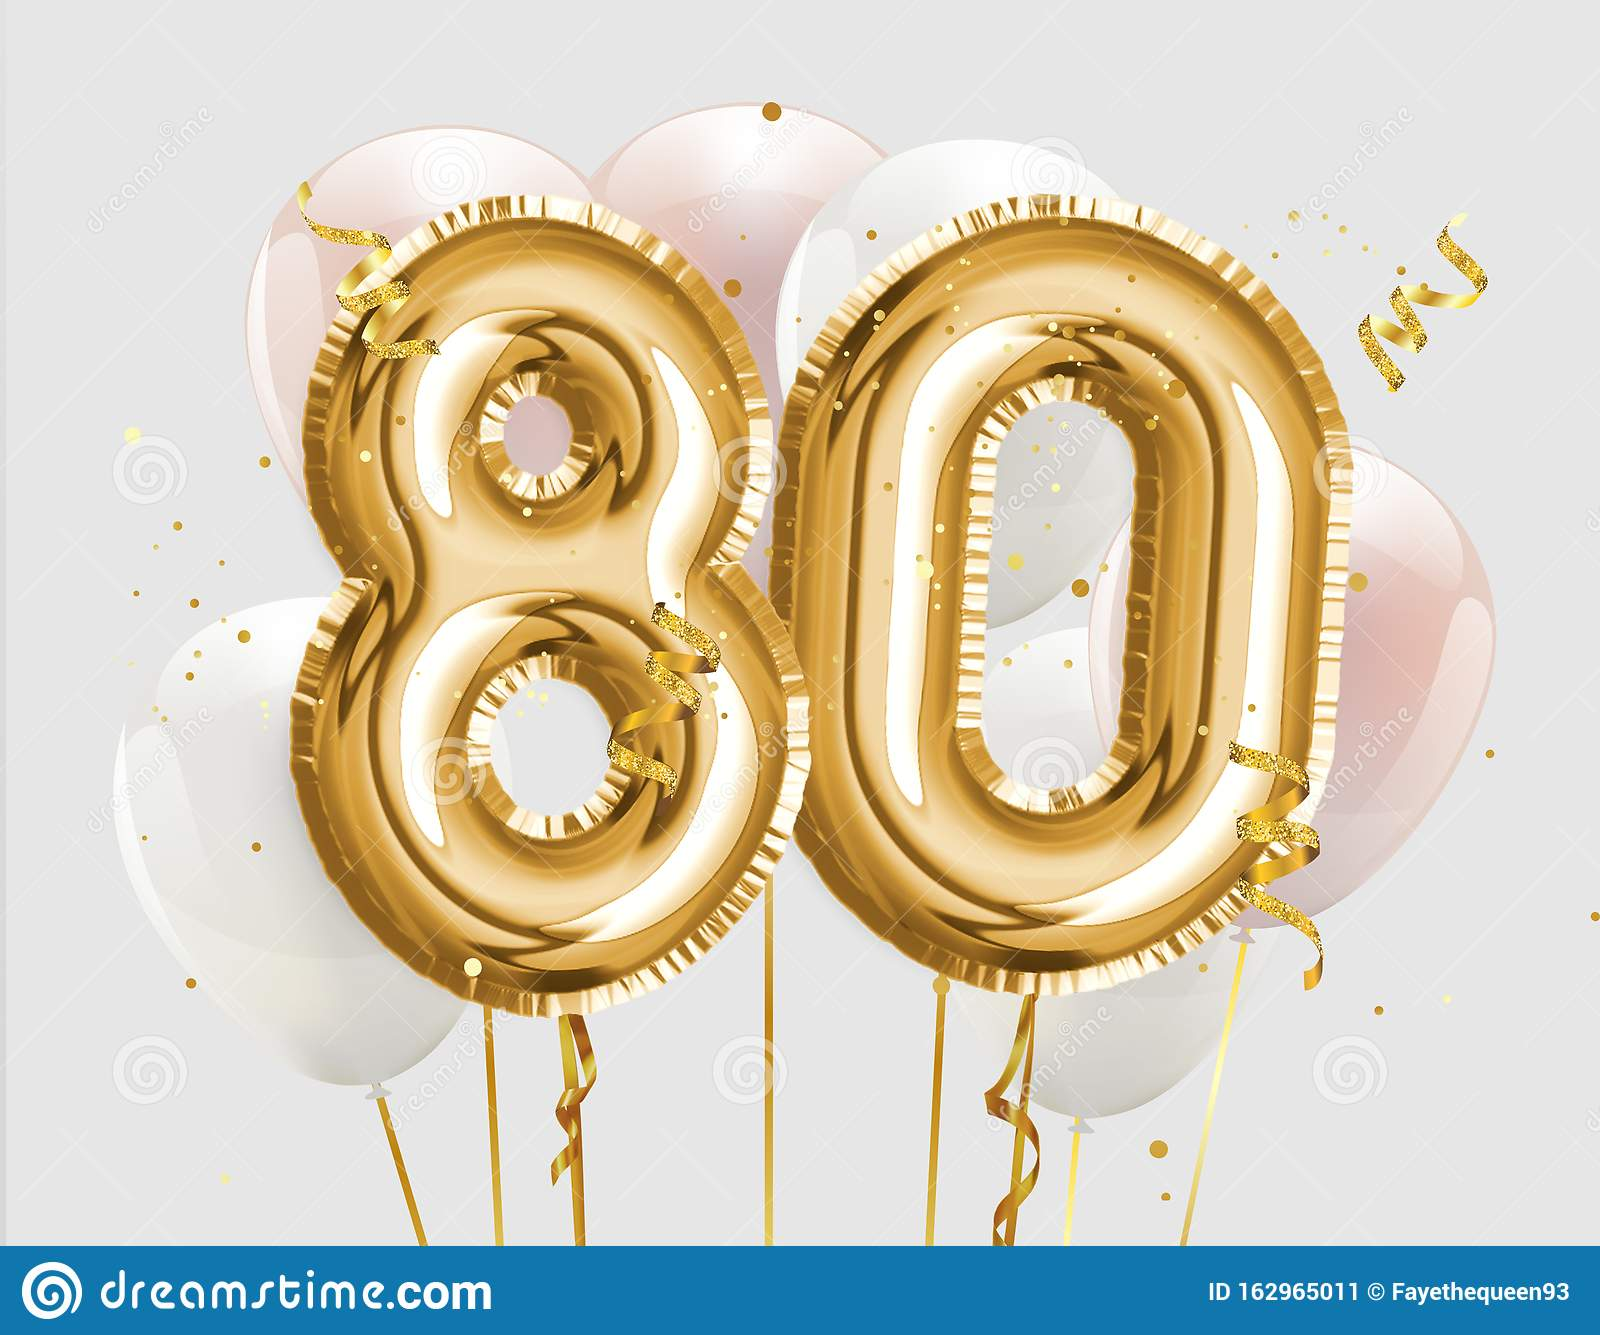 Happy 80th Birthday Gold Foil Balloon Greeting Background